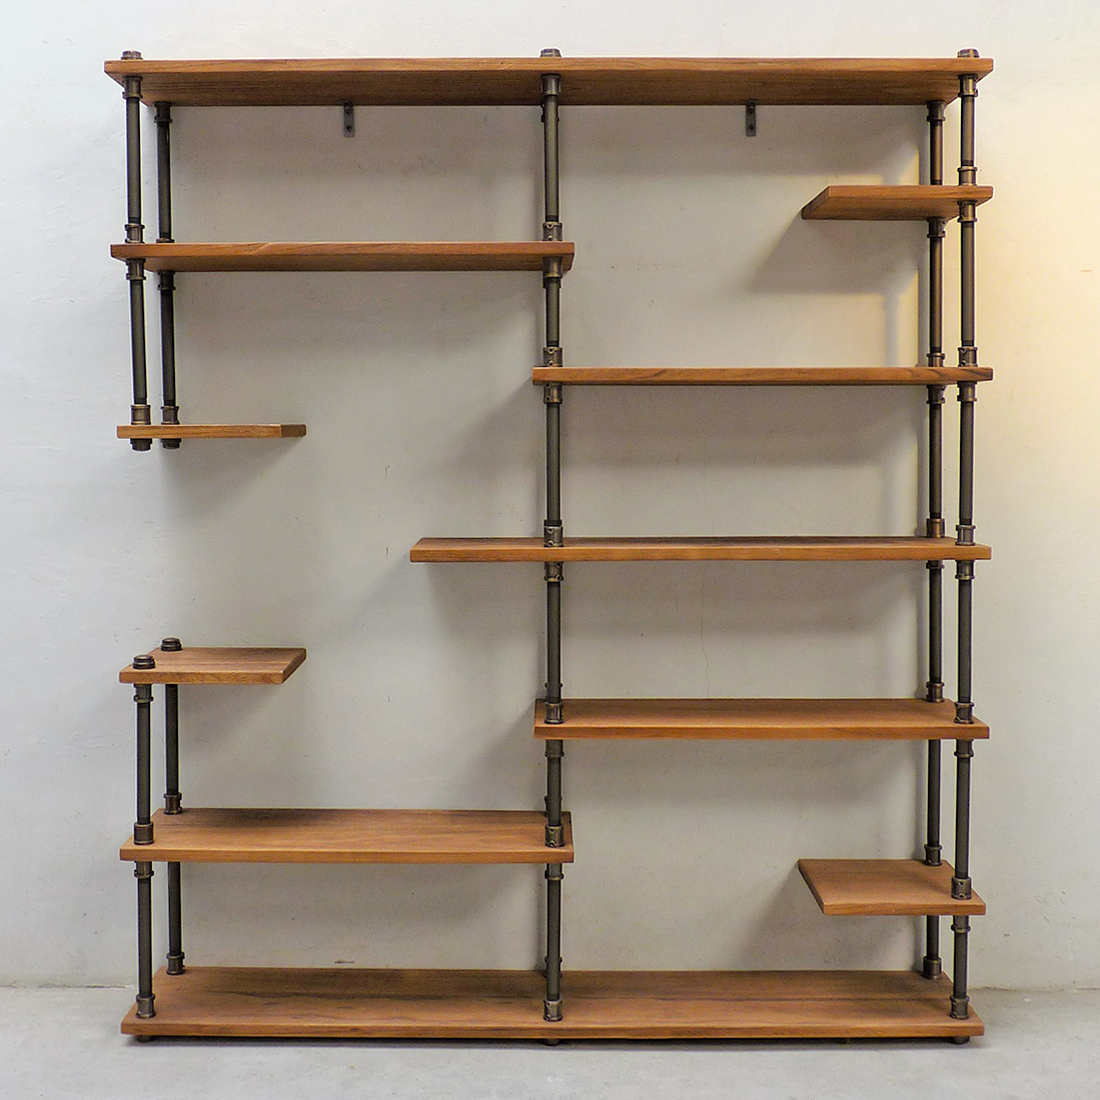 Preferred Ermont Etagere Bookcases Pertaining To Etagere Bookcase (View 18 of 20)